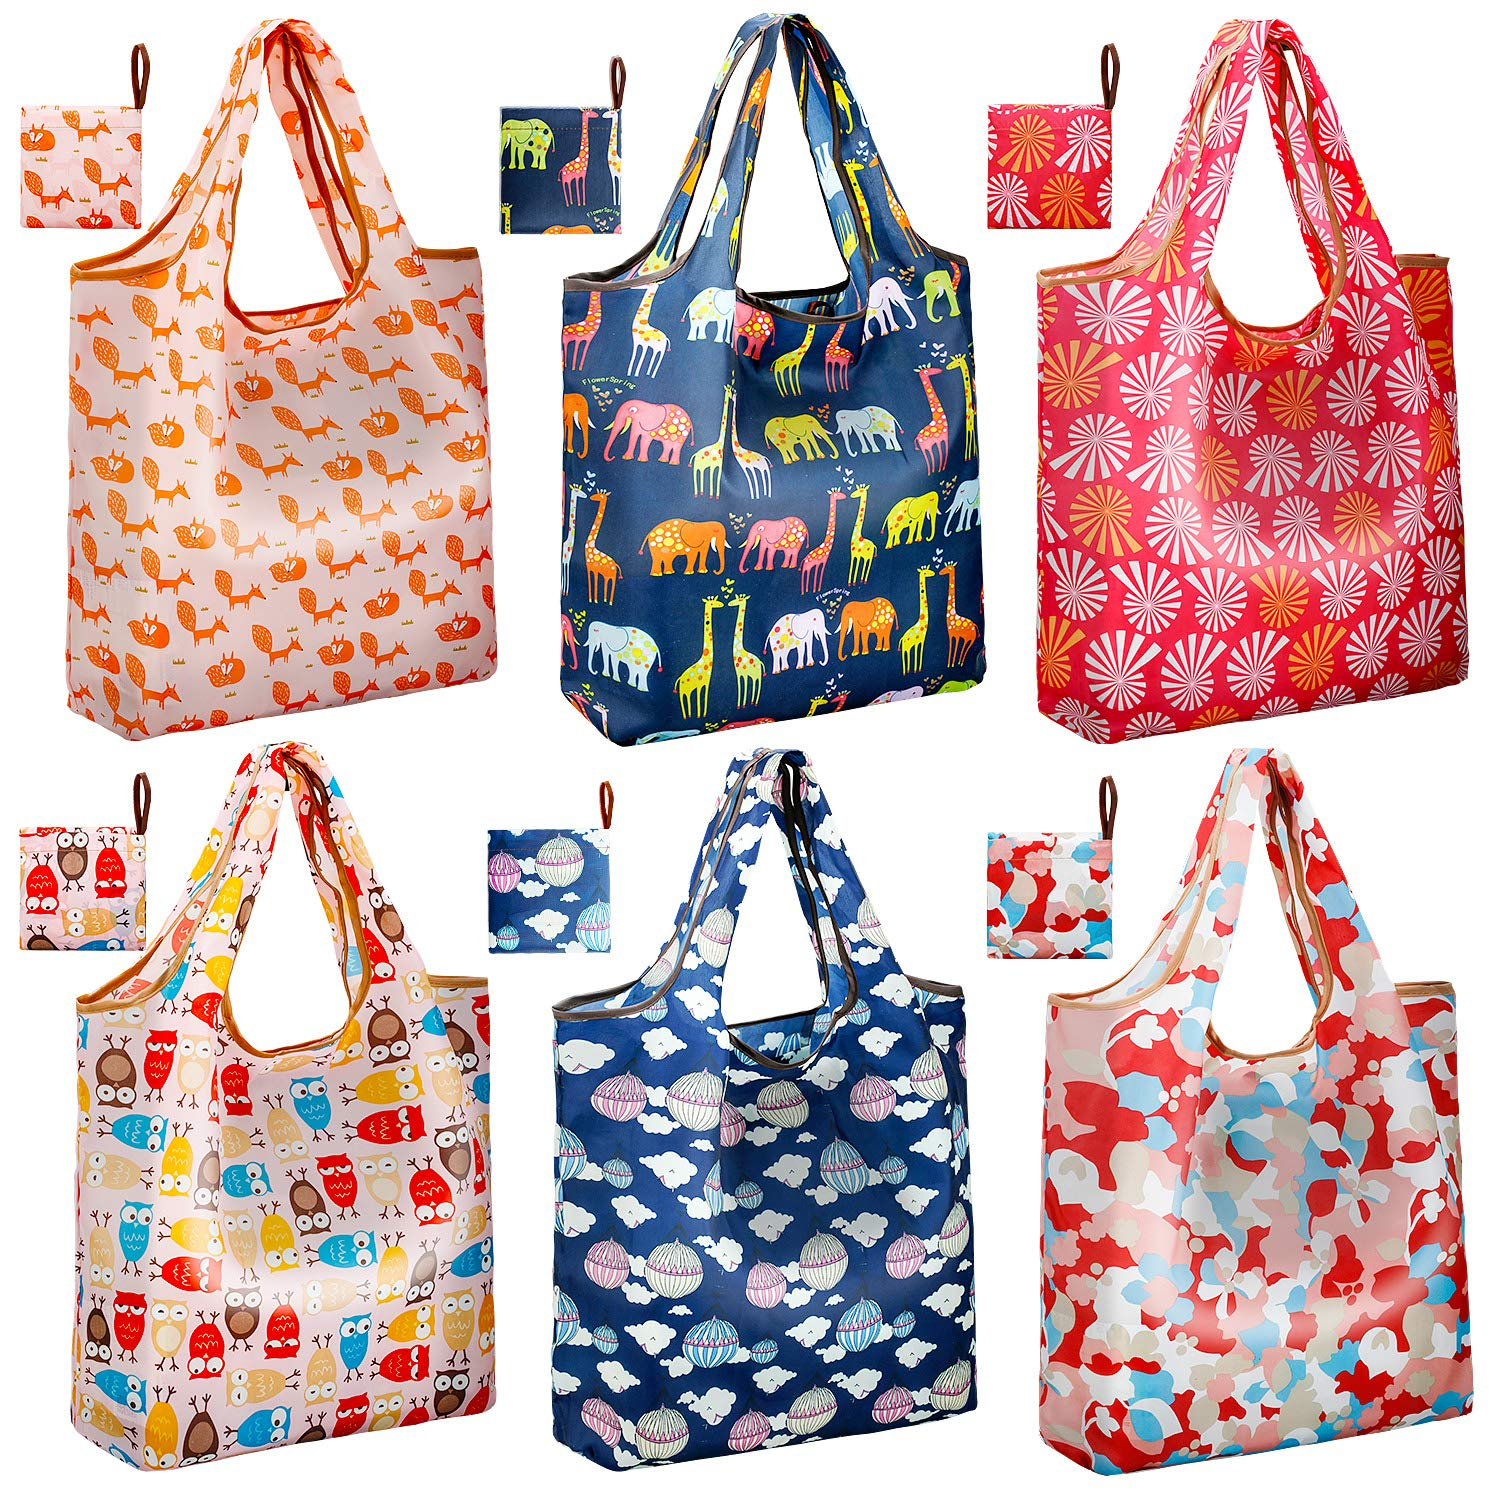 [Thickened Nylon] Reusable Shopping Tote Bags Pack of 6   JARTON Collapsible Reusable Grocery Bags Heavy Duty with 35lbs Weight Capacity